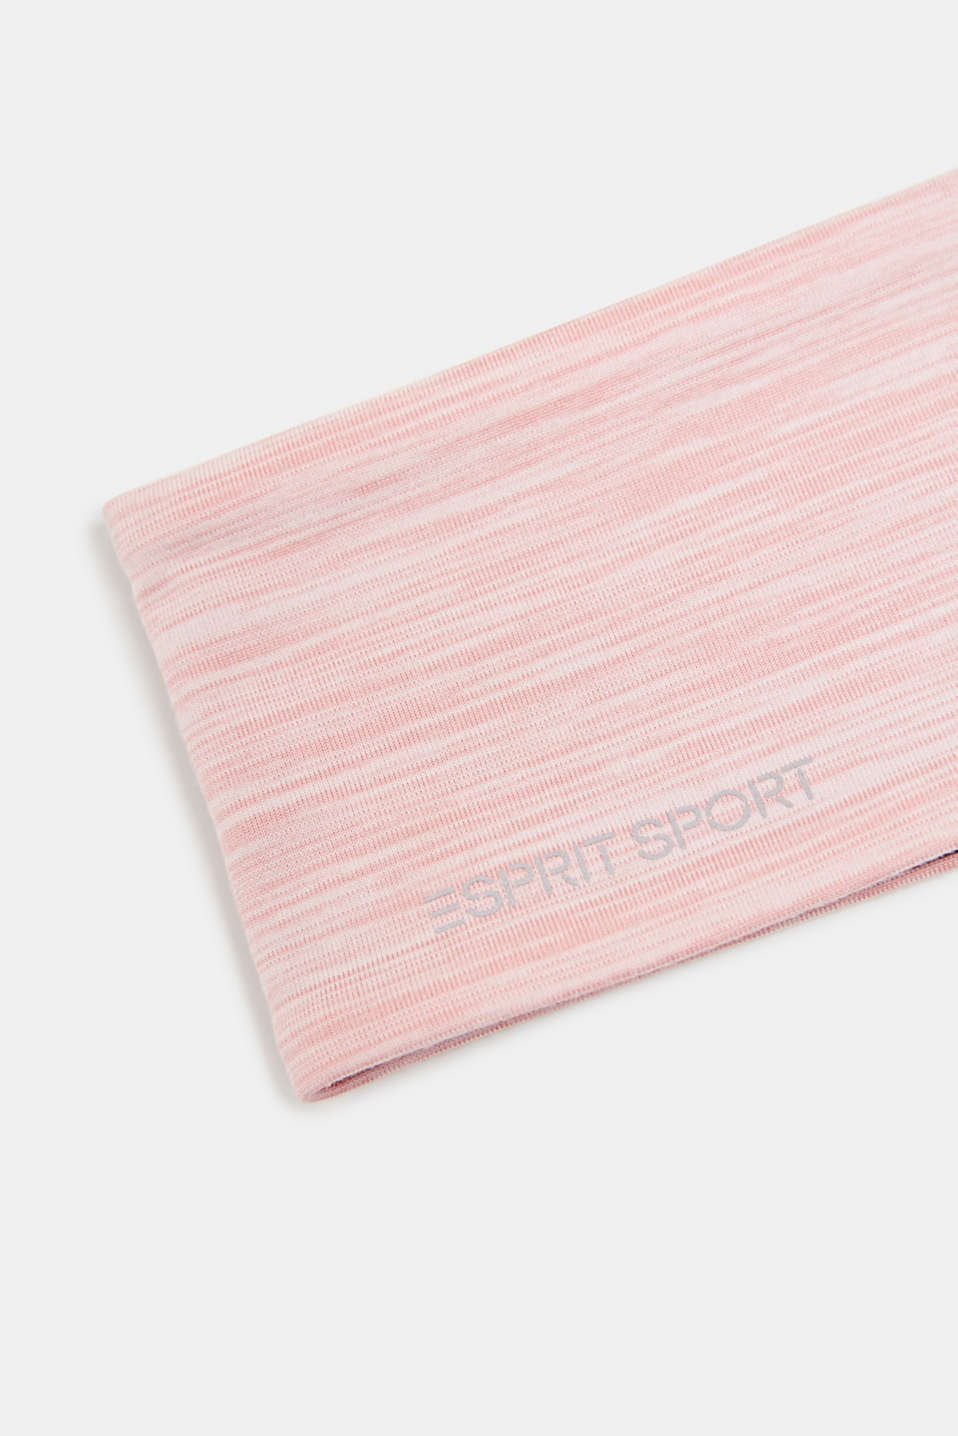 Reversible stretch jersey headband, LIGHT PINK 2, detail image number 1